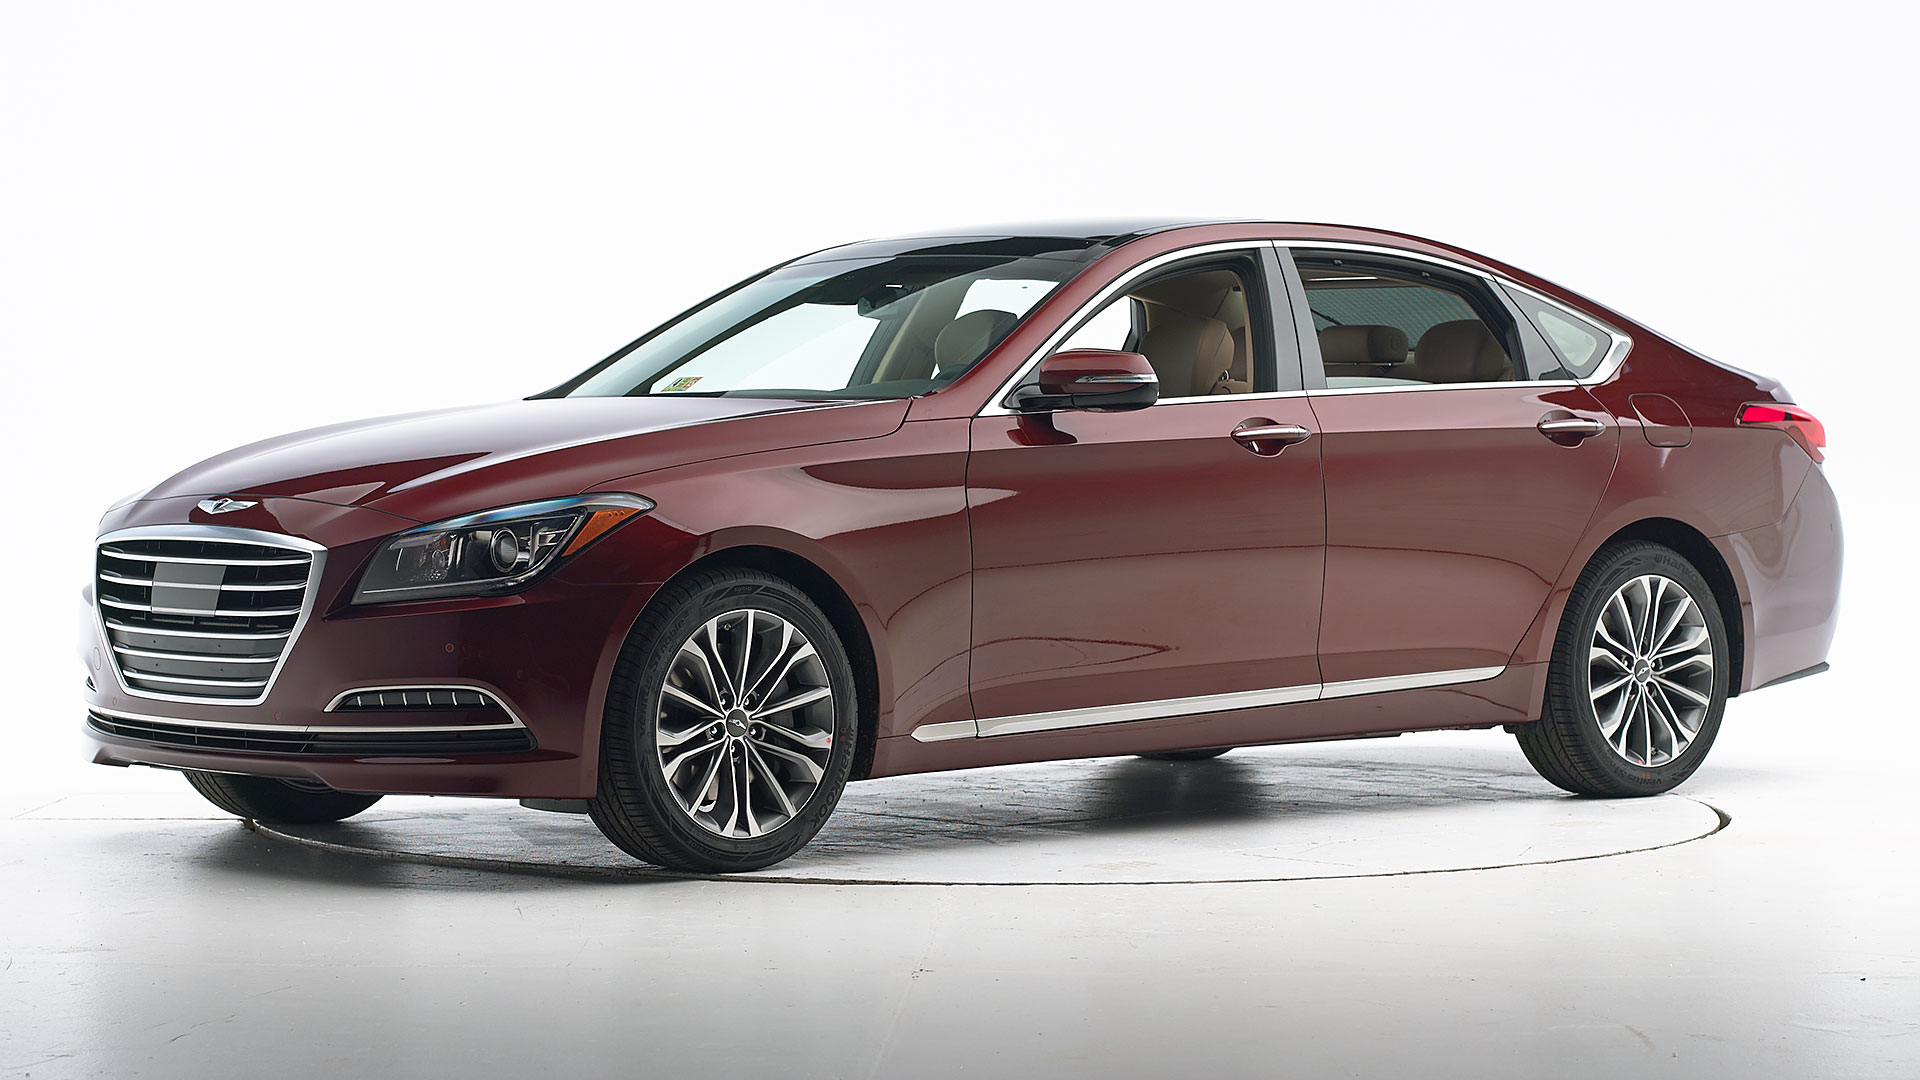 2016 Hyundai Genesis 4-door sedan